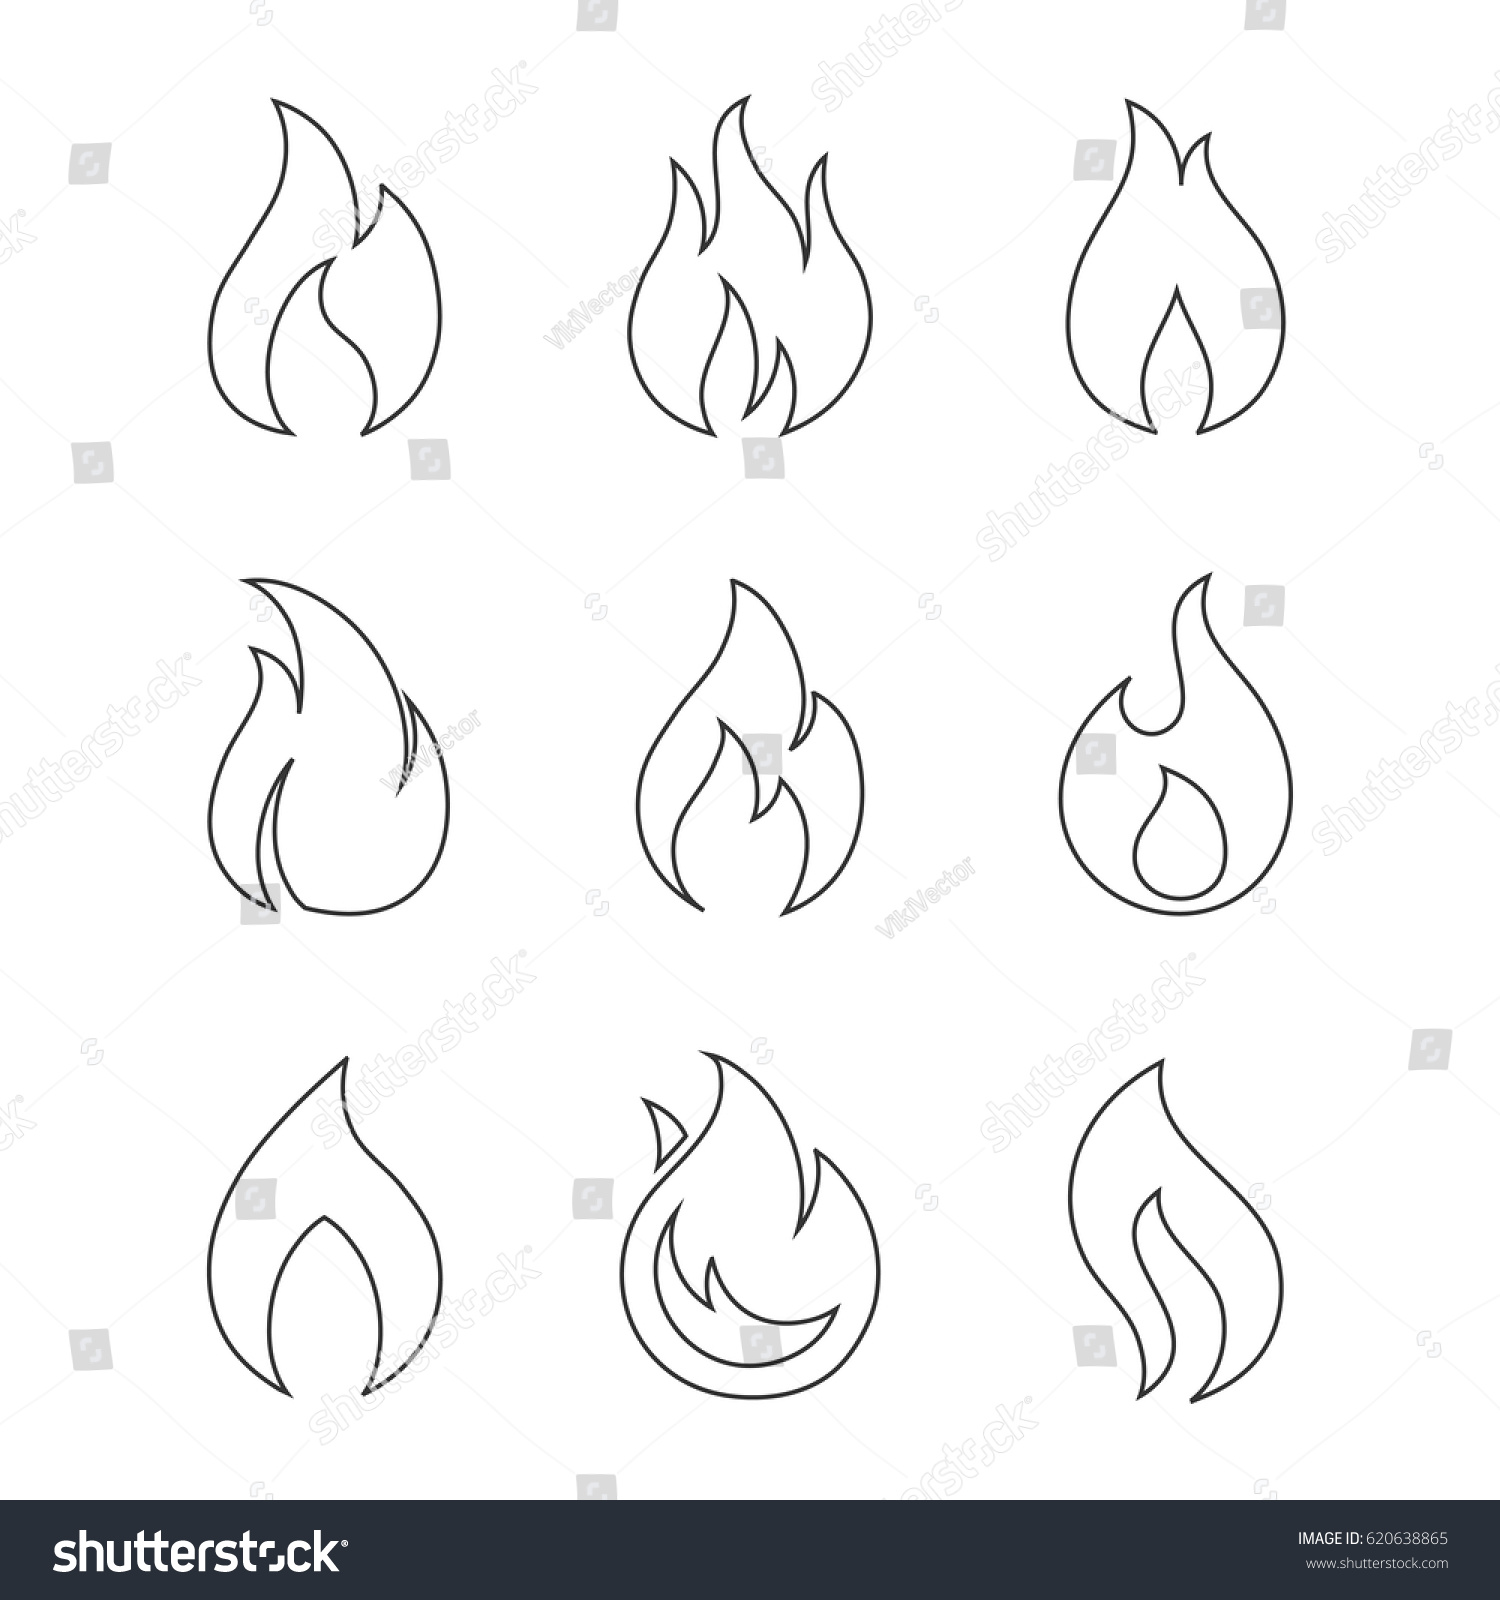 Fire Outline Icons On White Background Stock Vector ...